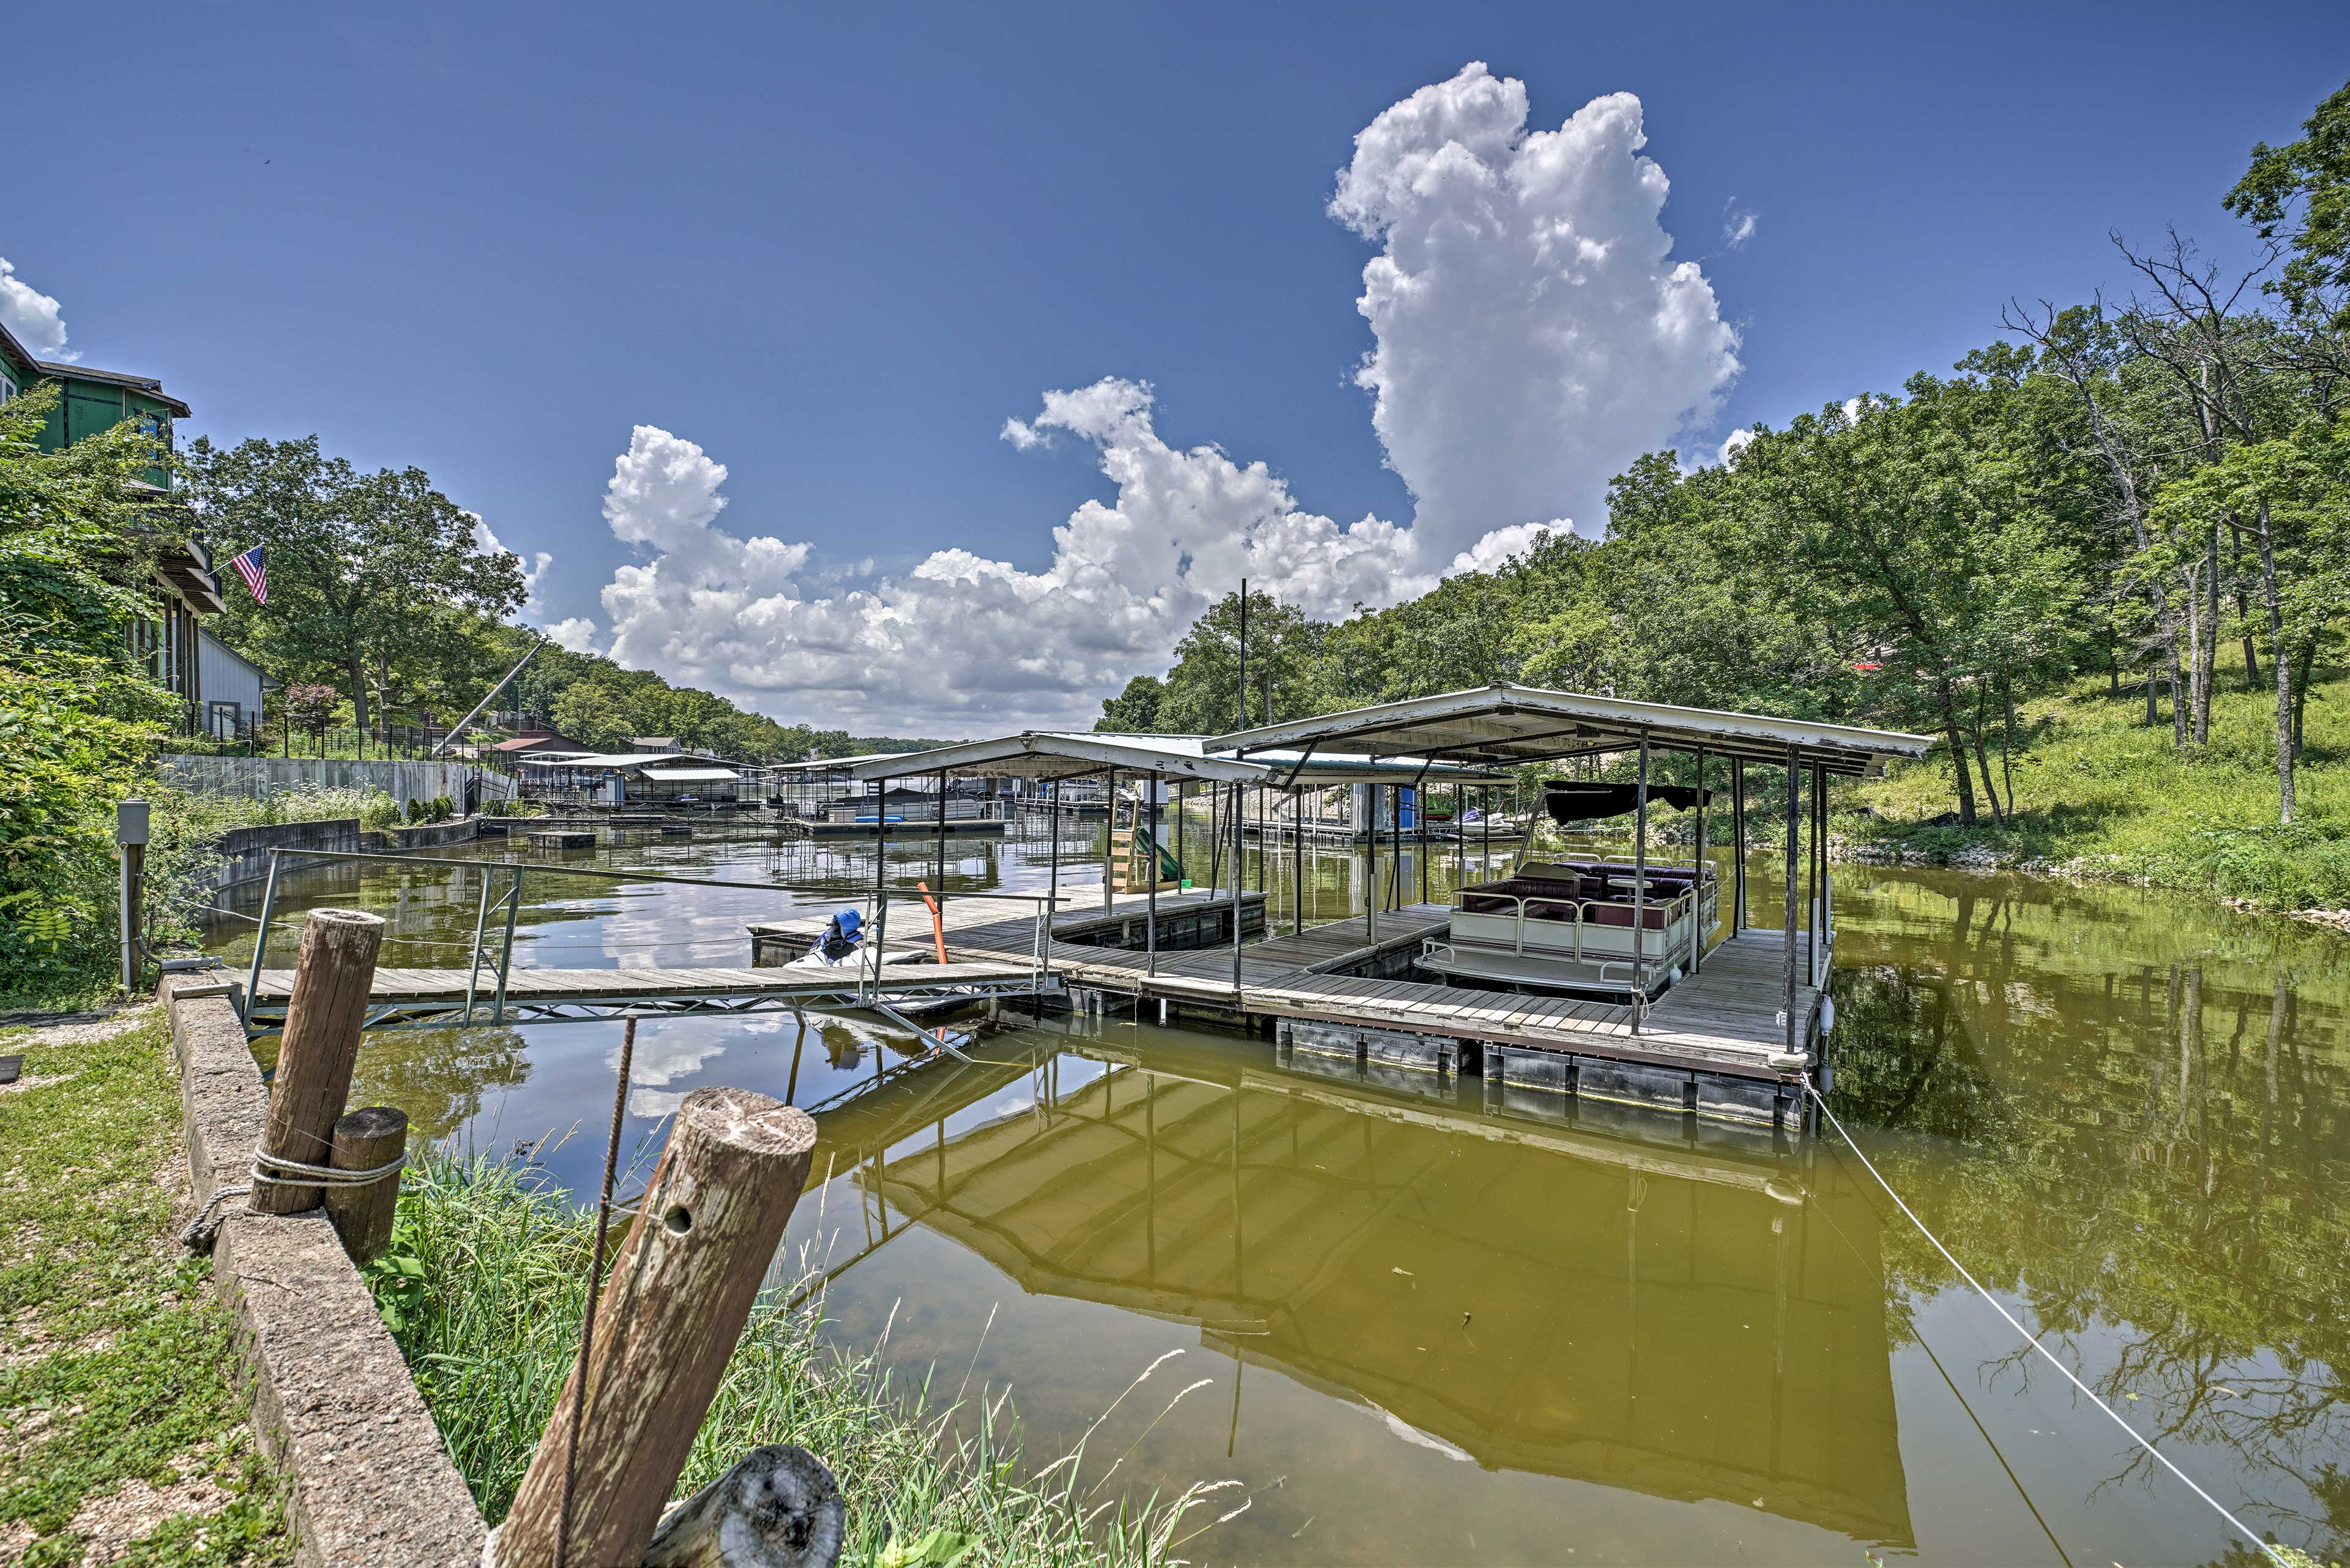 The lake house sits on Lick Branch Cove & includes a dock & swimming platform.